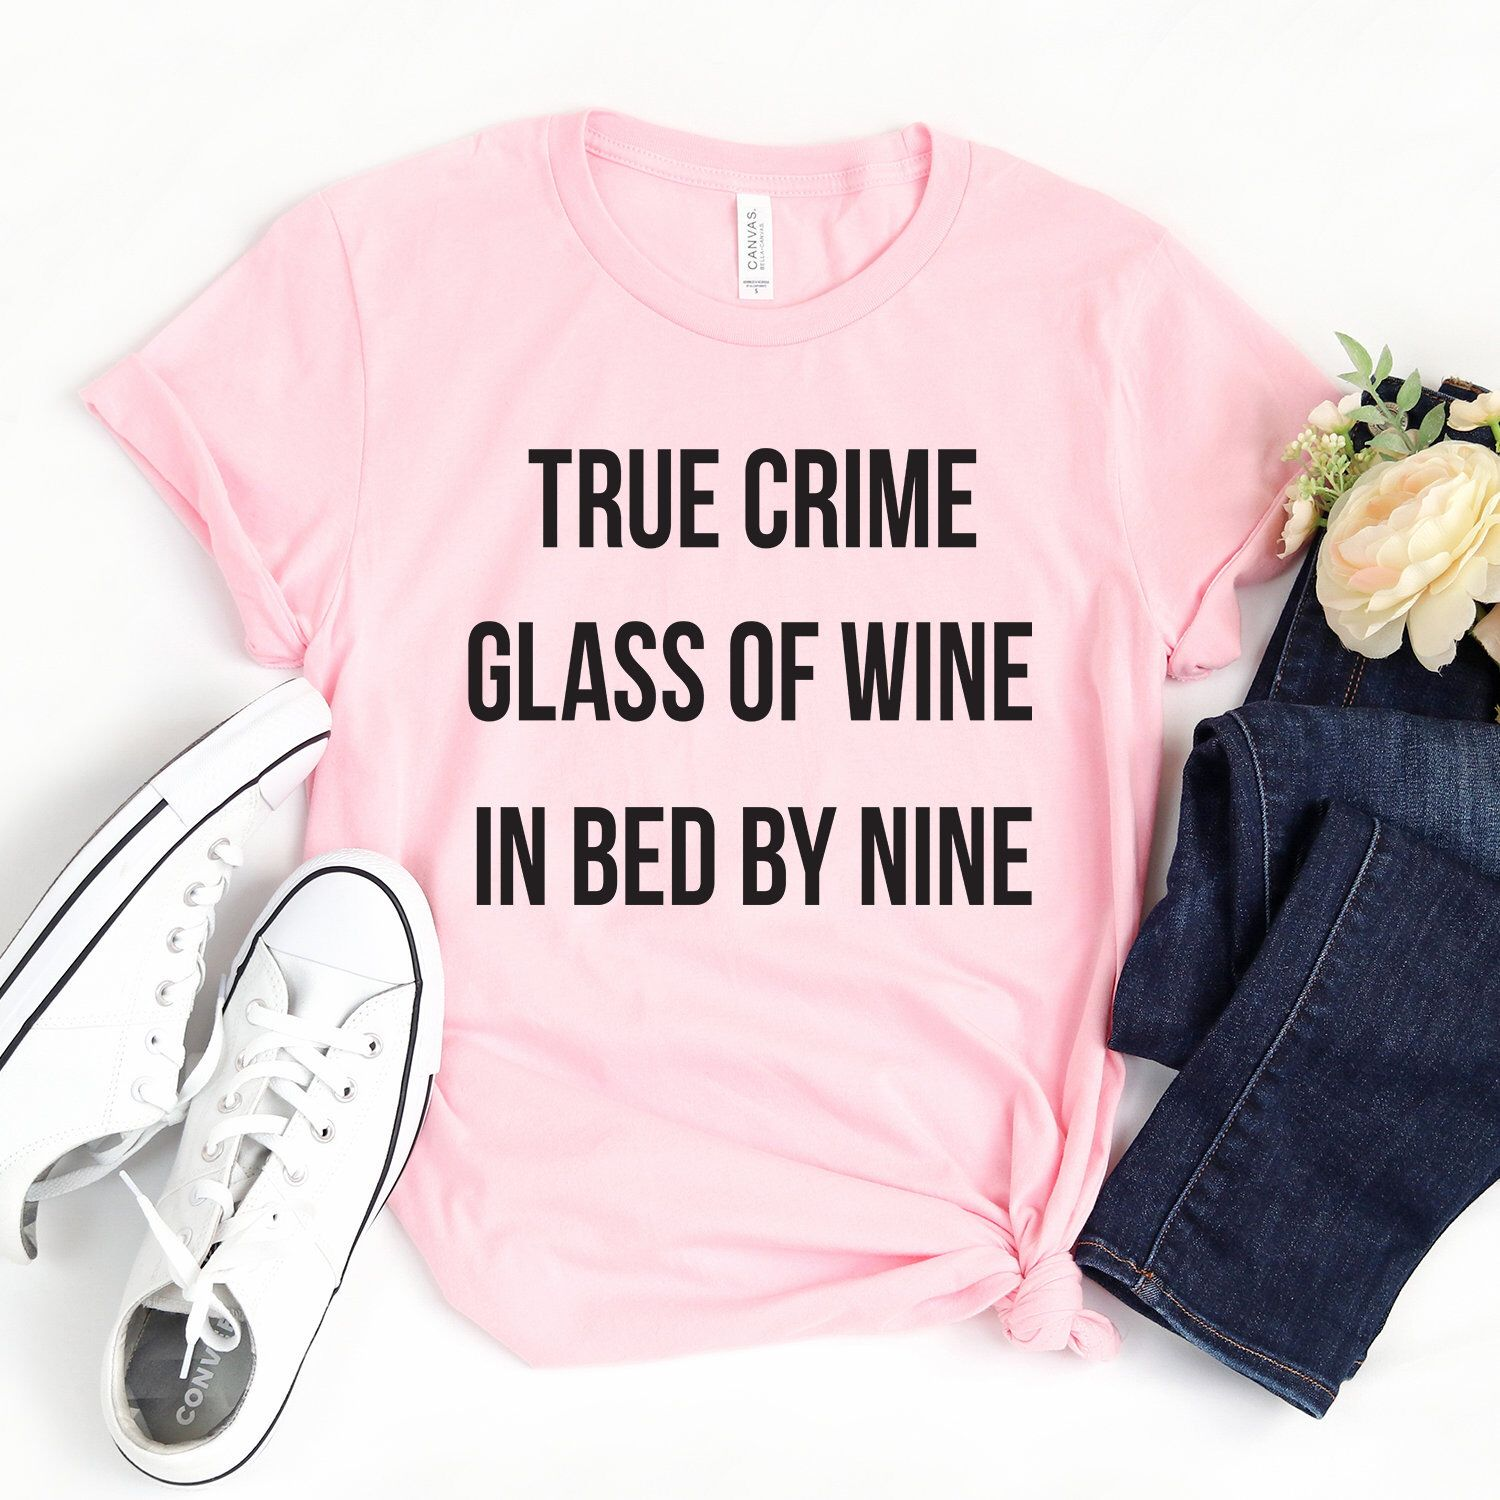 Excited to share this item from my etsy shop true crime